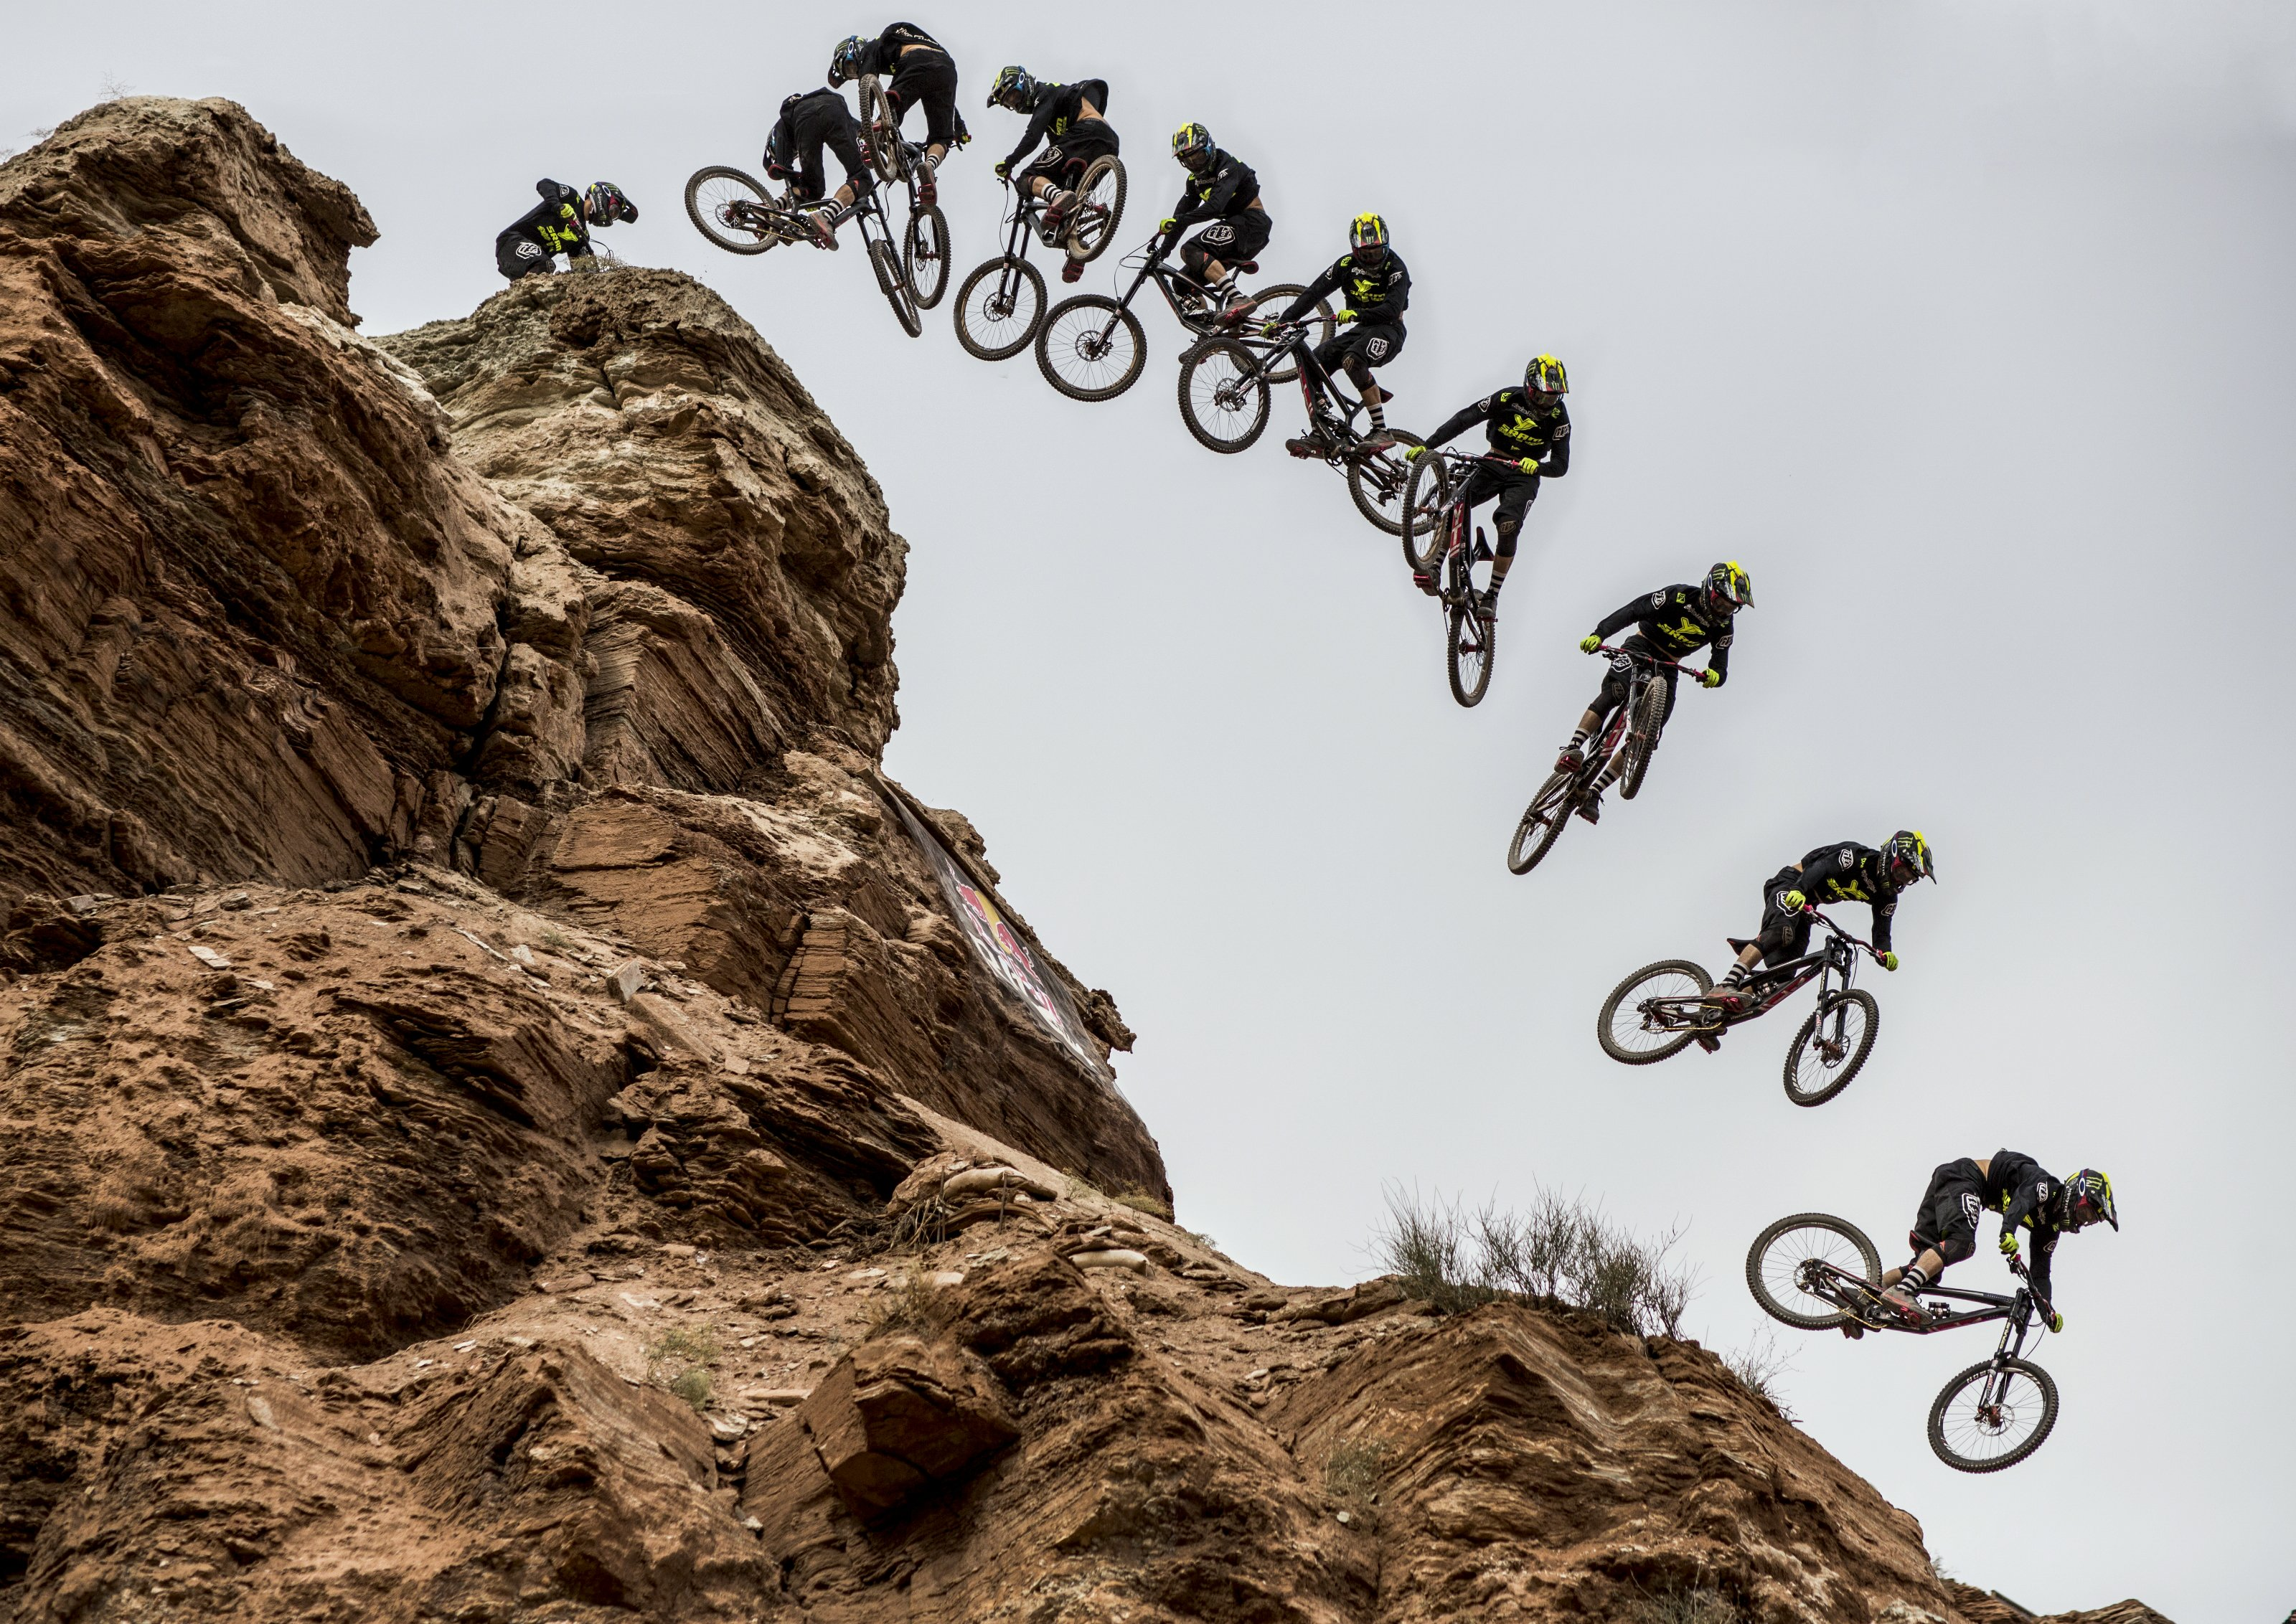 Organisers Beginner S Guide To The Red Bull Rampage Mbr